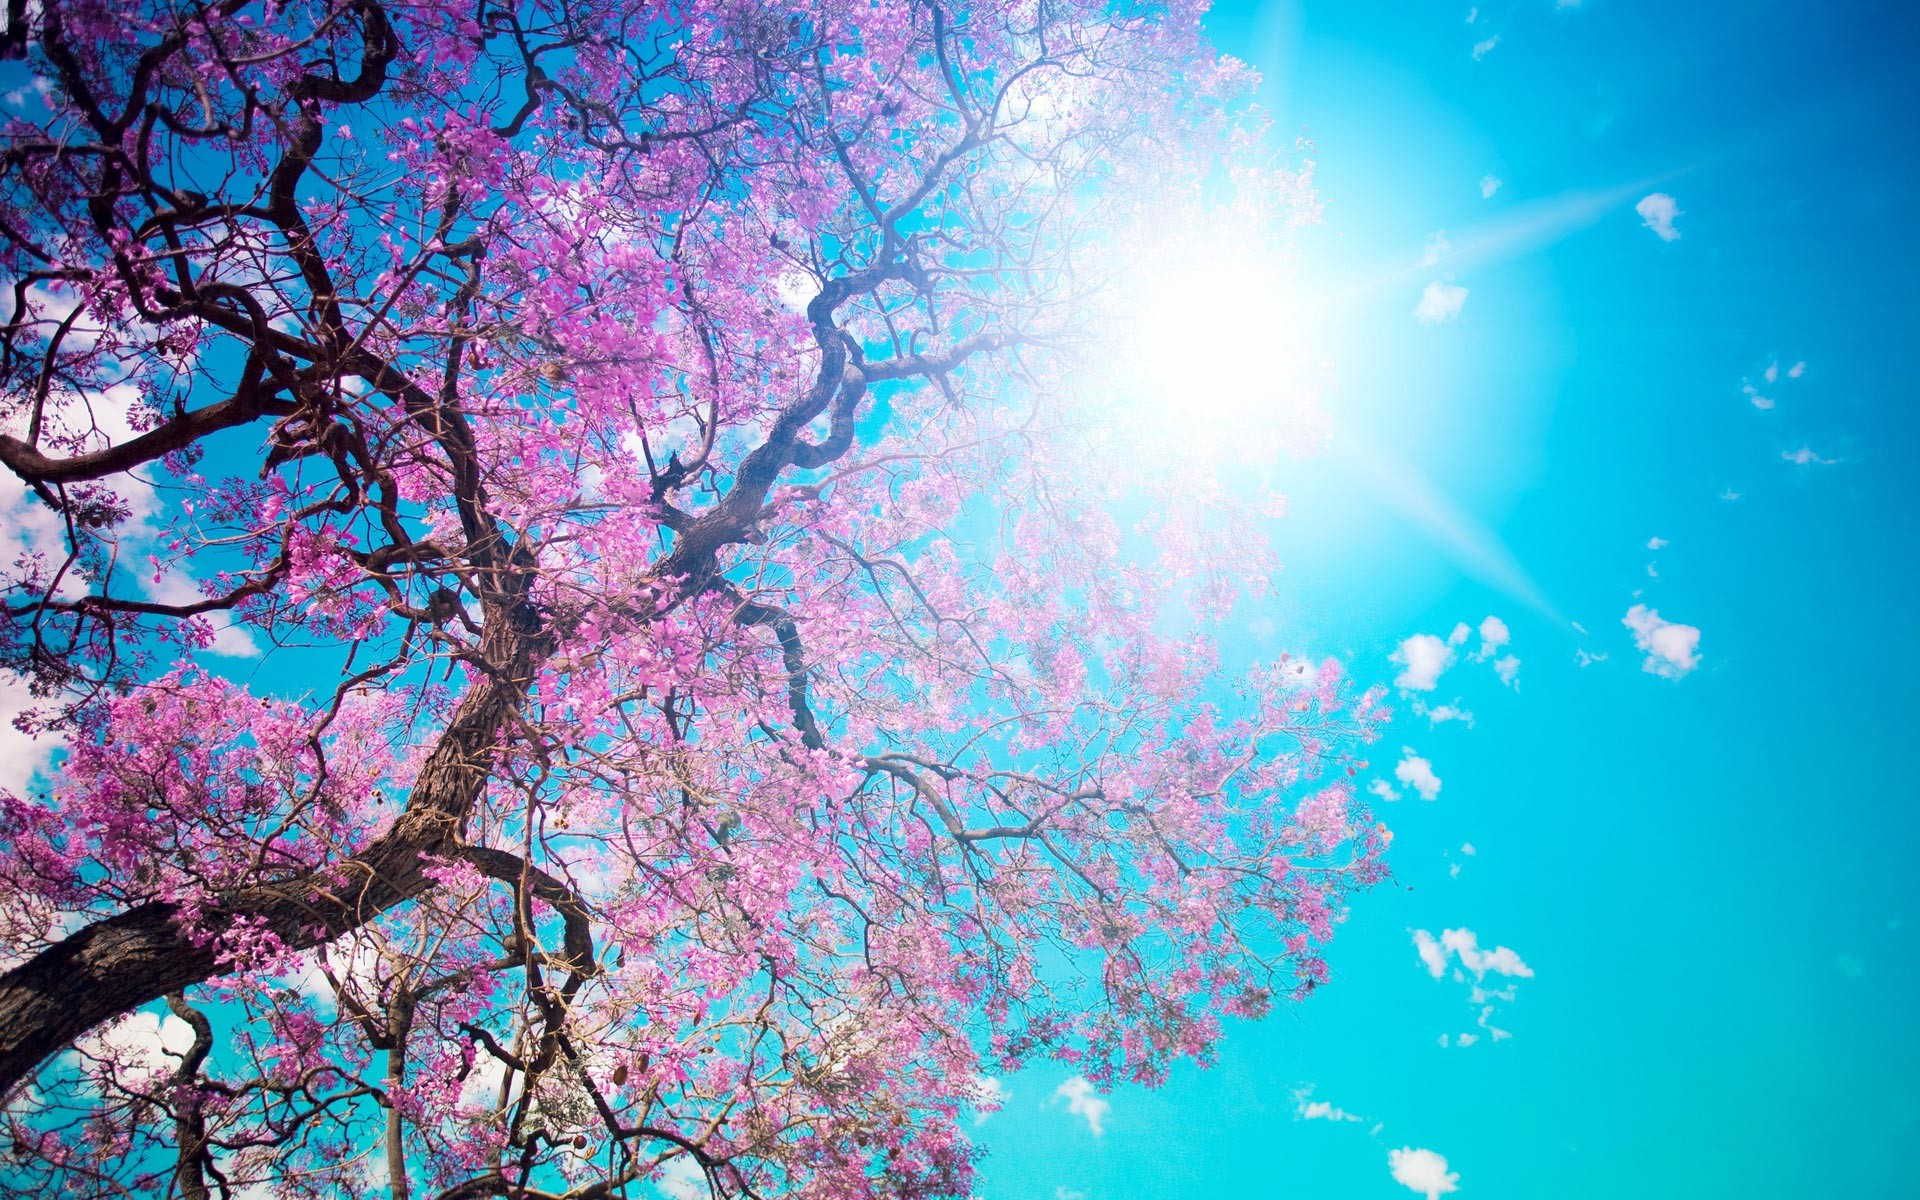 Free Scenery Wallpaper – Includes the Scene of Blooming Spring, Simply .